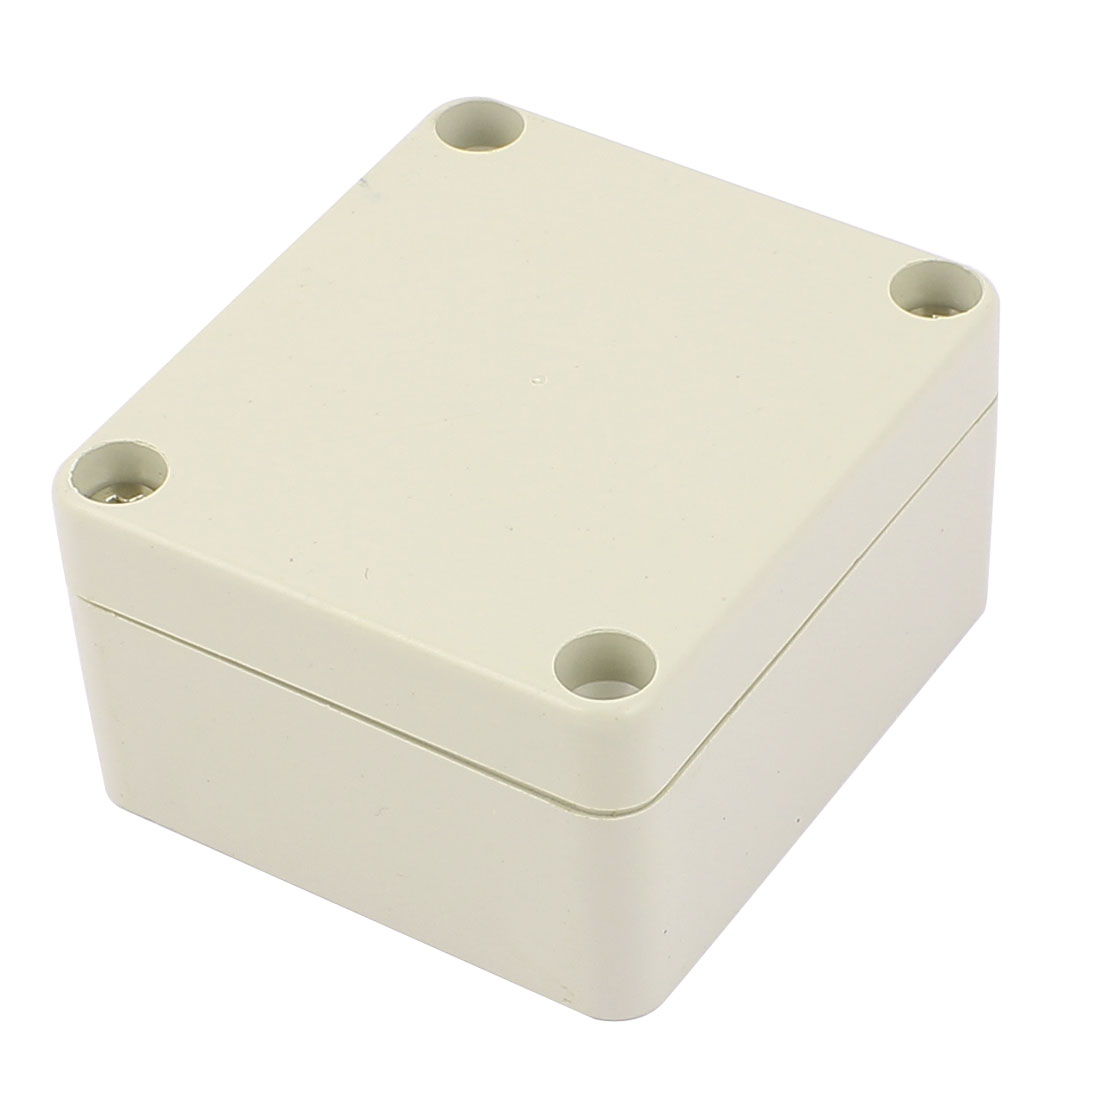 63mm x 58mm x 35mm Rectangular Waterproof Plastic DIY Junction Box Case - image 3 de 3